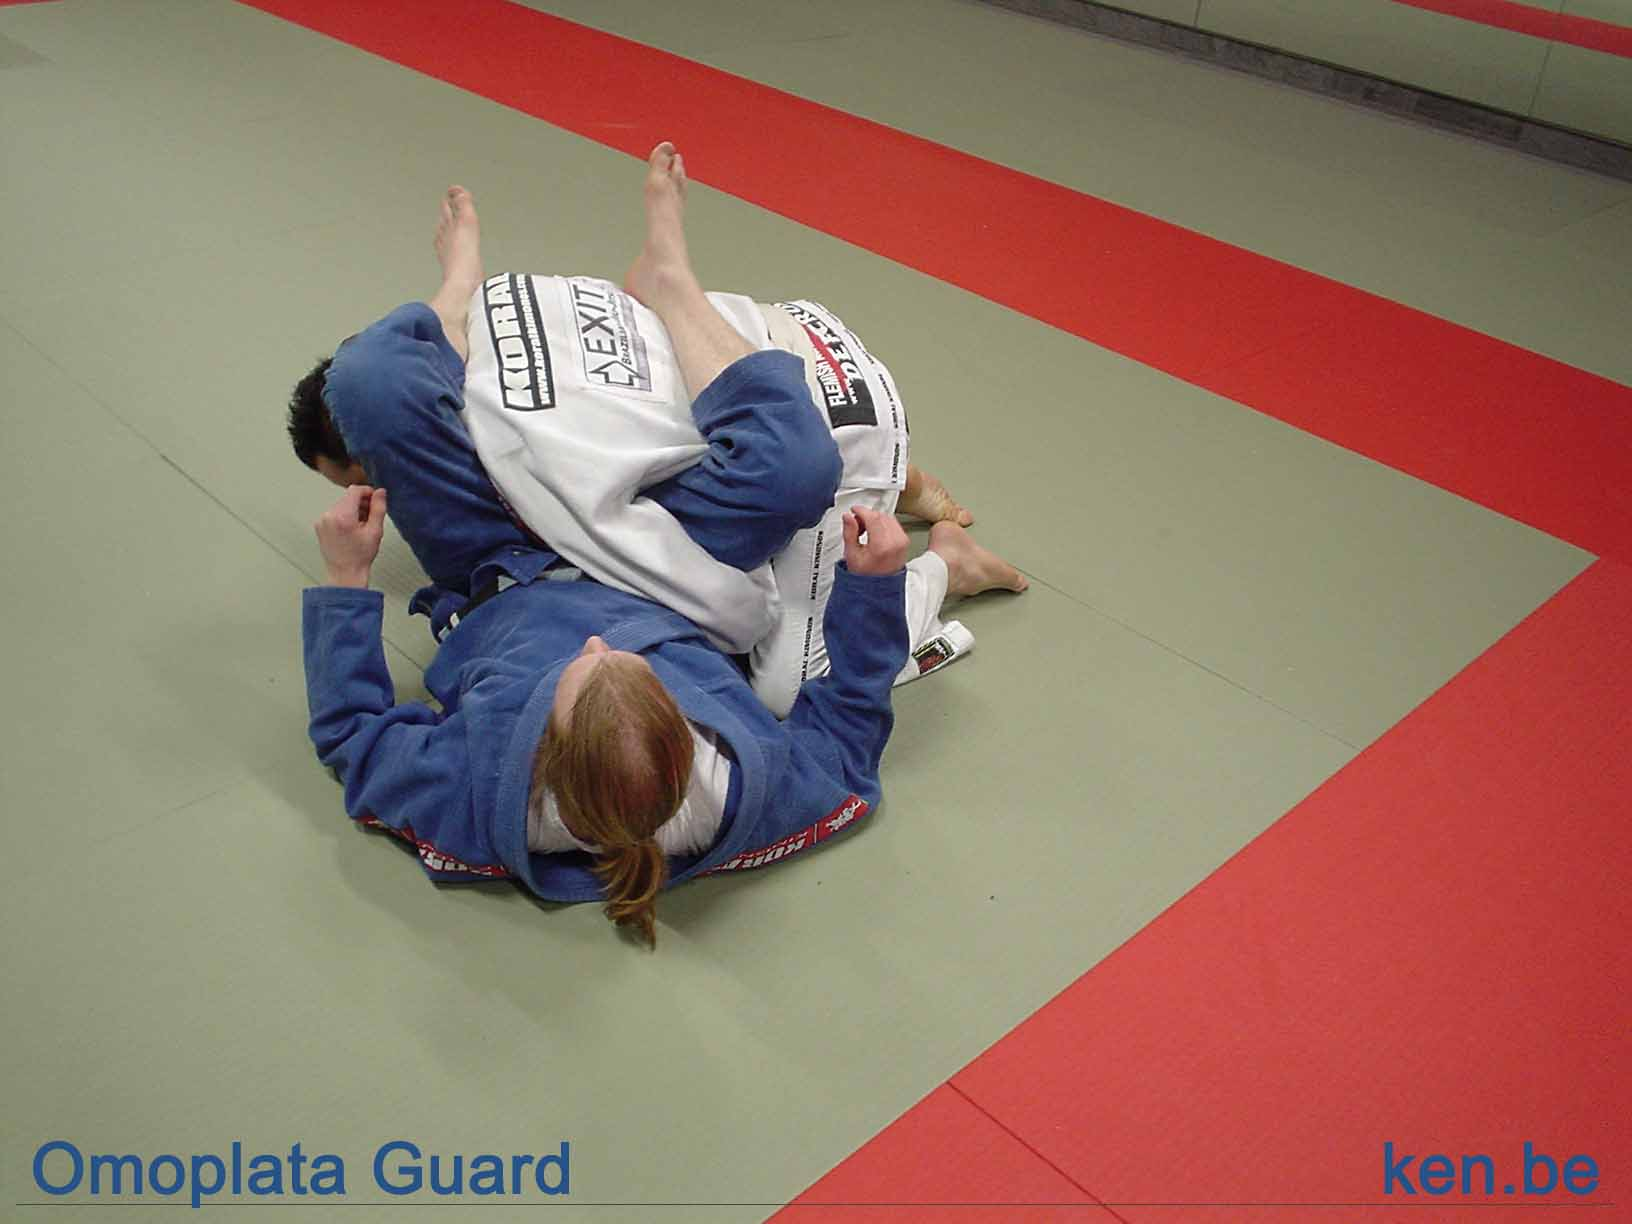 http://www.ken.be/gallery/Vechtsporten/Technieken/Ground%20Positions/omoplata_guard.jpg